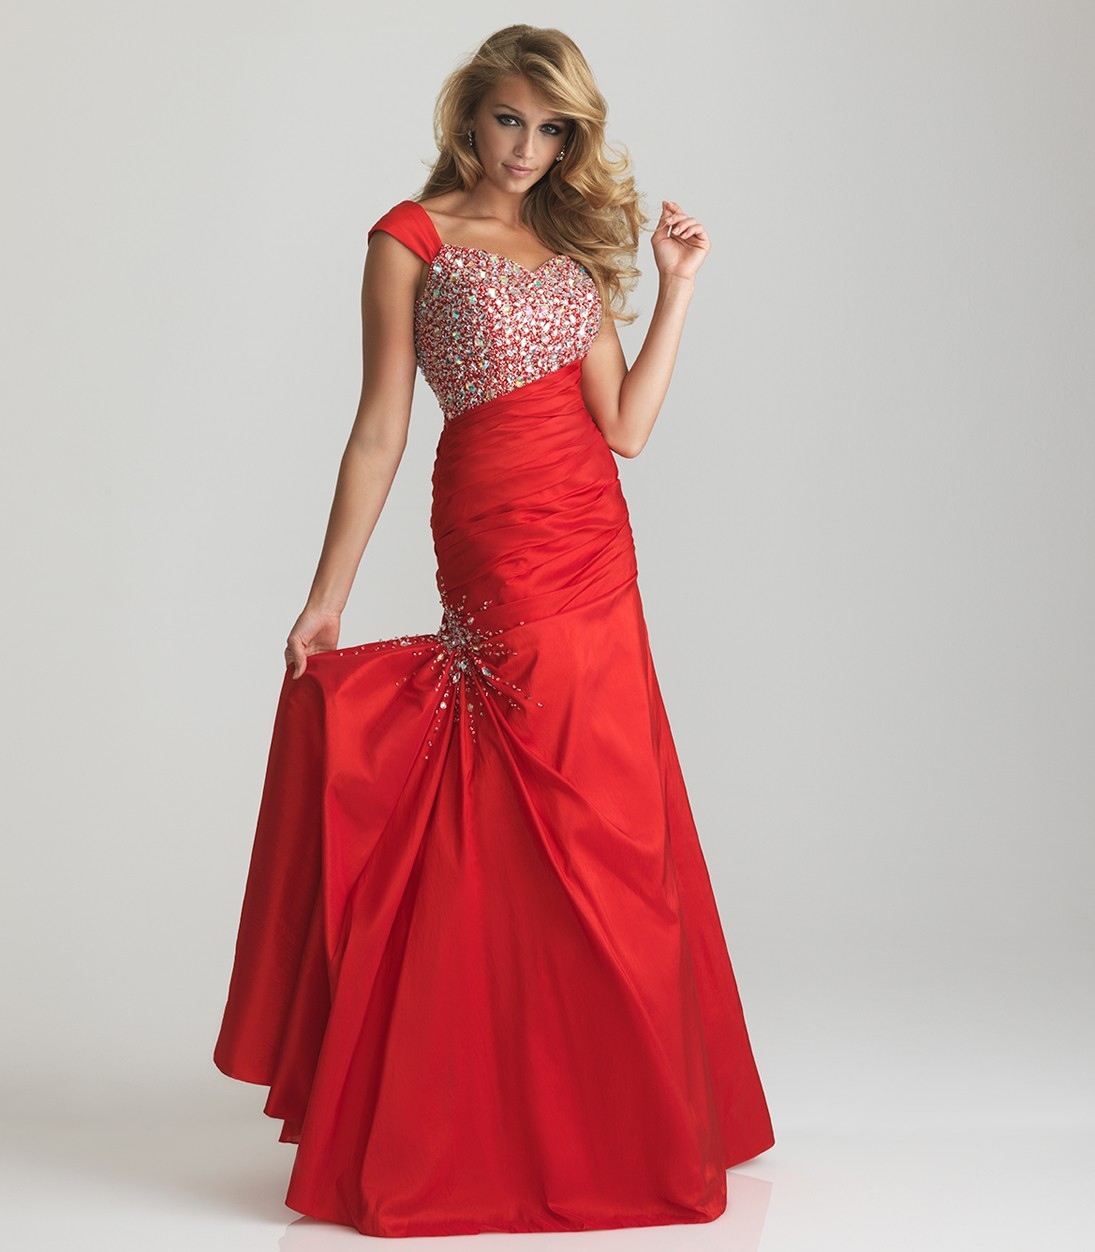 Vintage red wedding dresses look so shiny and elegant for Pics of red wedding dresses